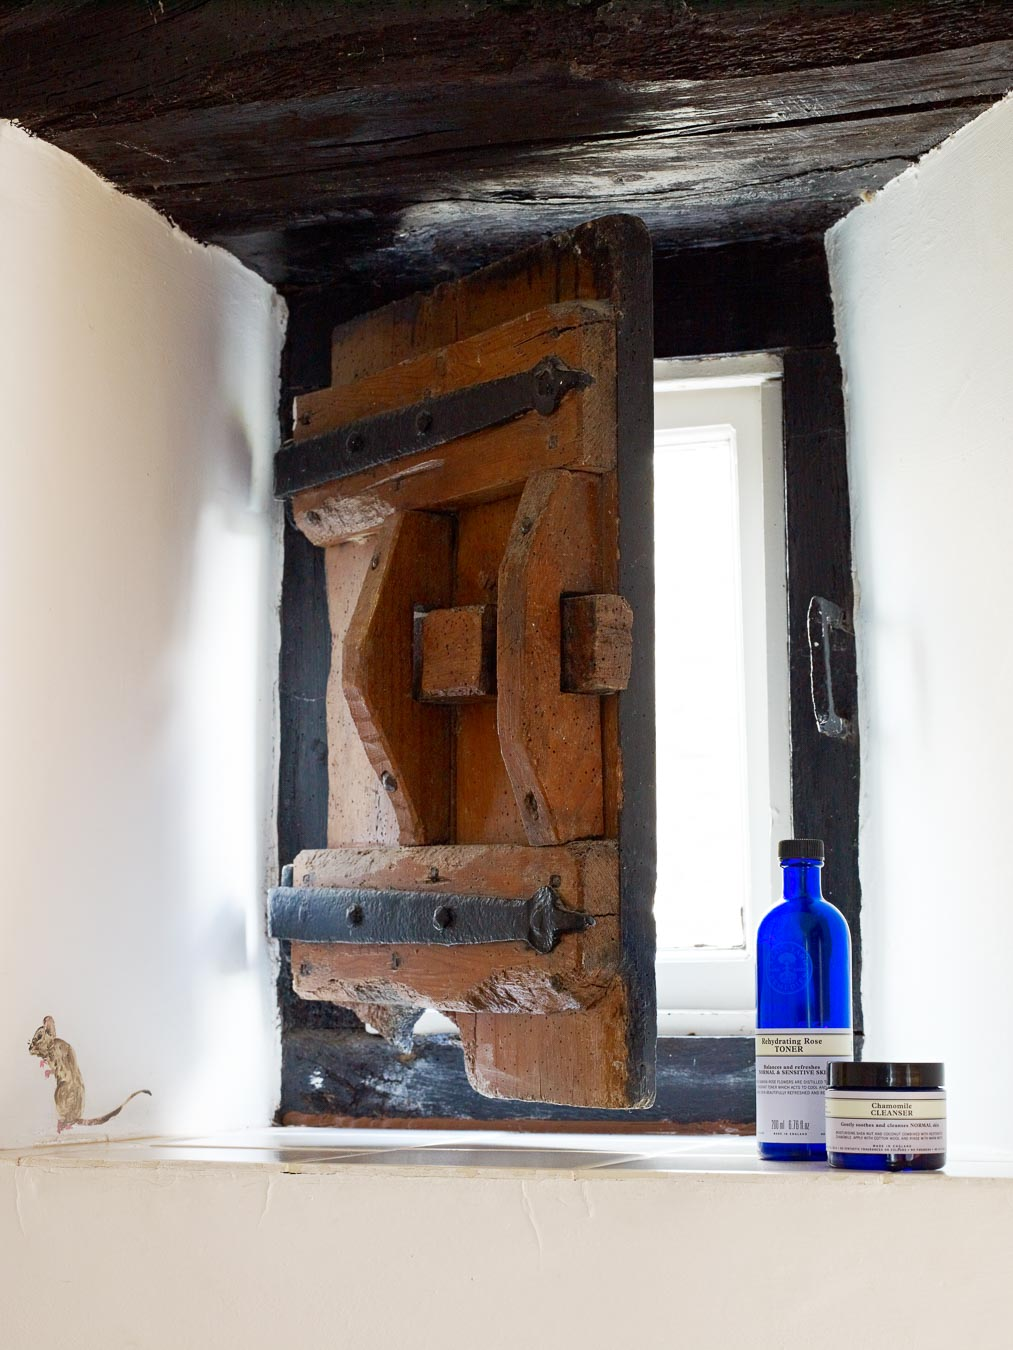 The original wooden shutter in the family bathroom in 1843 cottage Flear Farm.